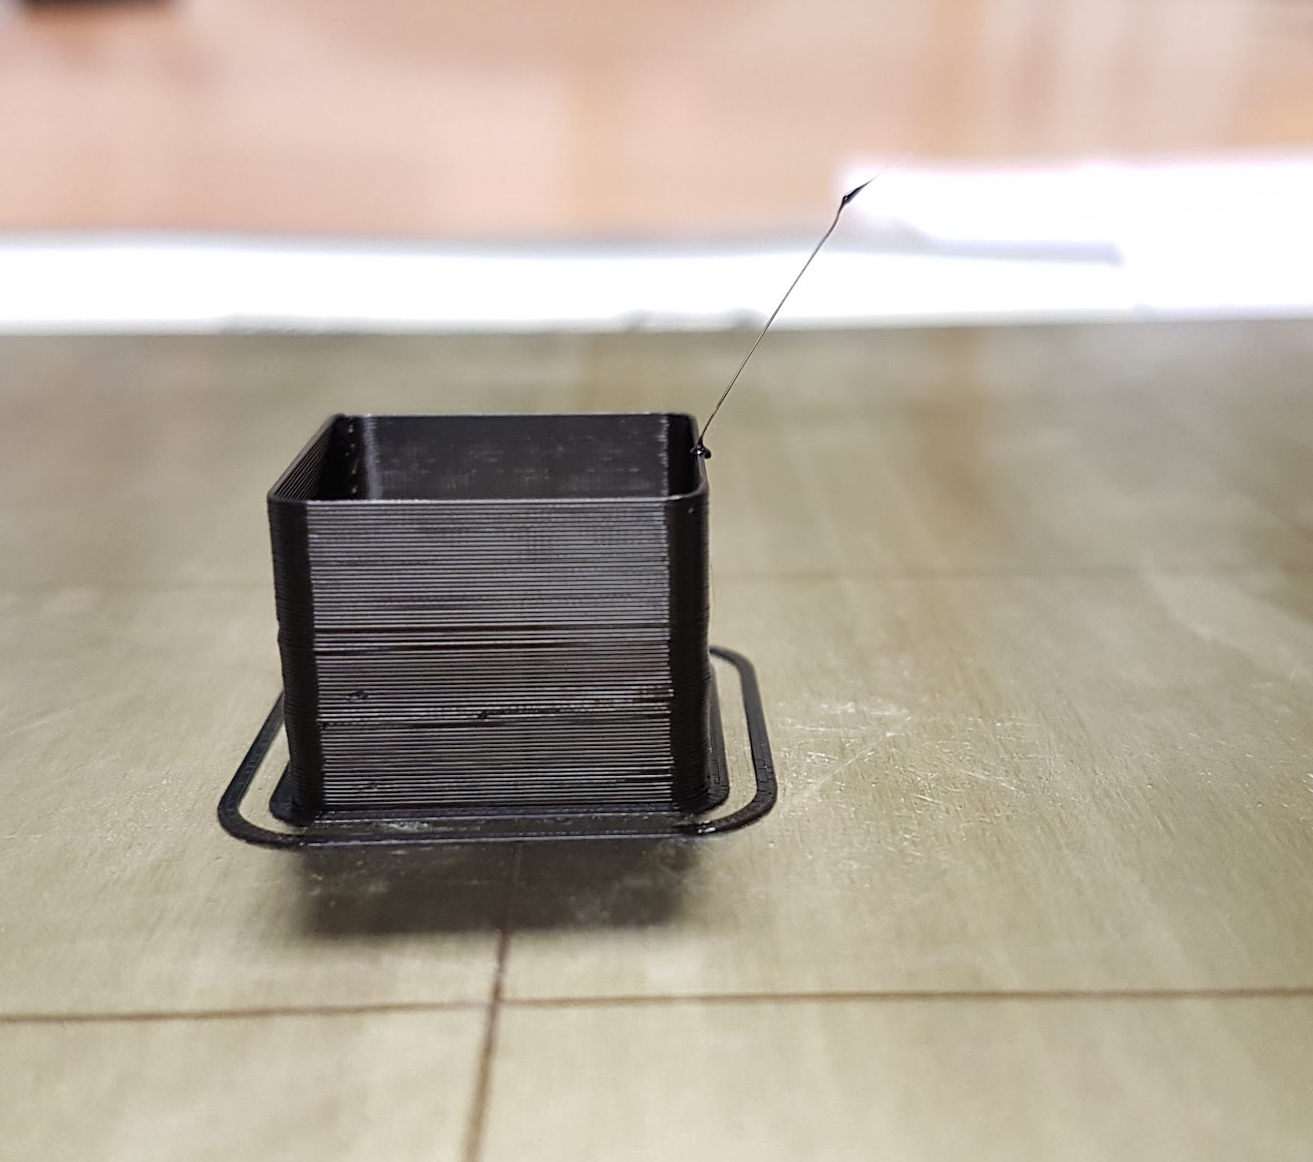 Inconsistent Extrusion · Issue #602 · prusa3d/Prusa-Firmware · GitHub